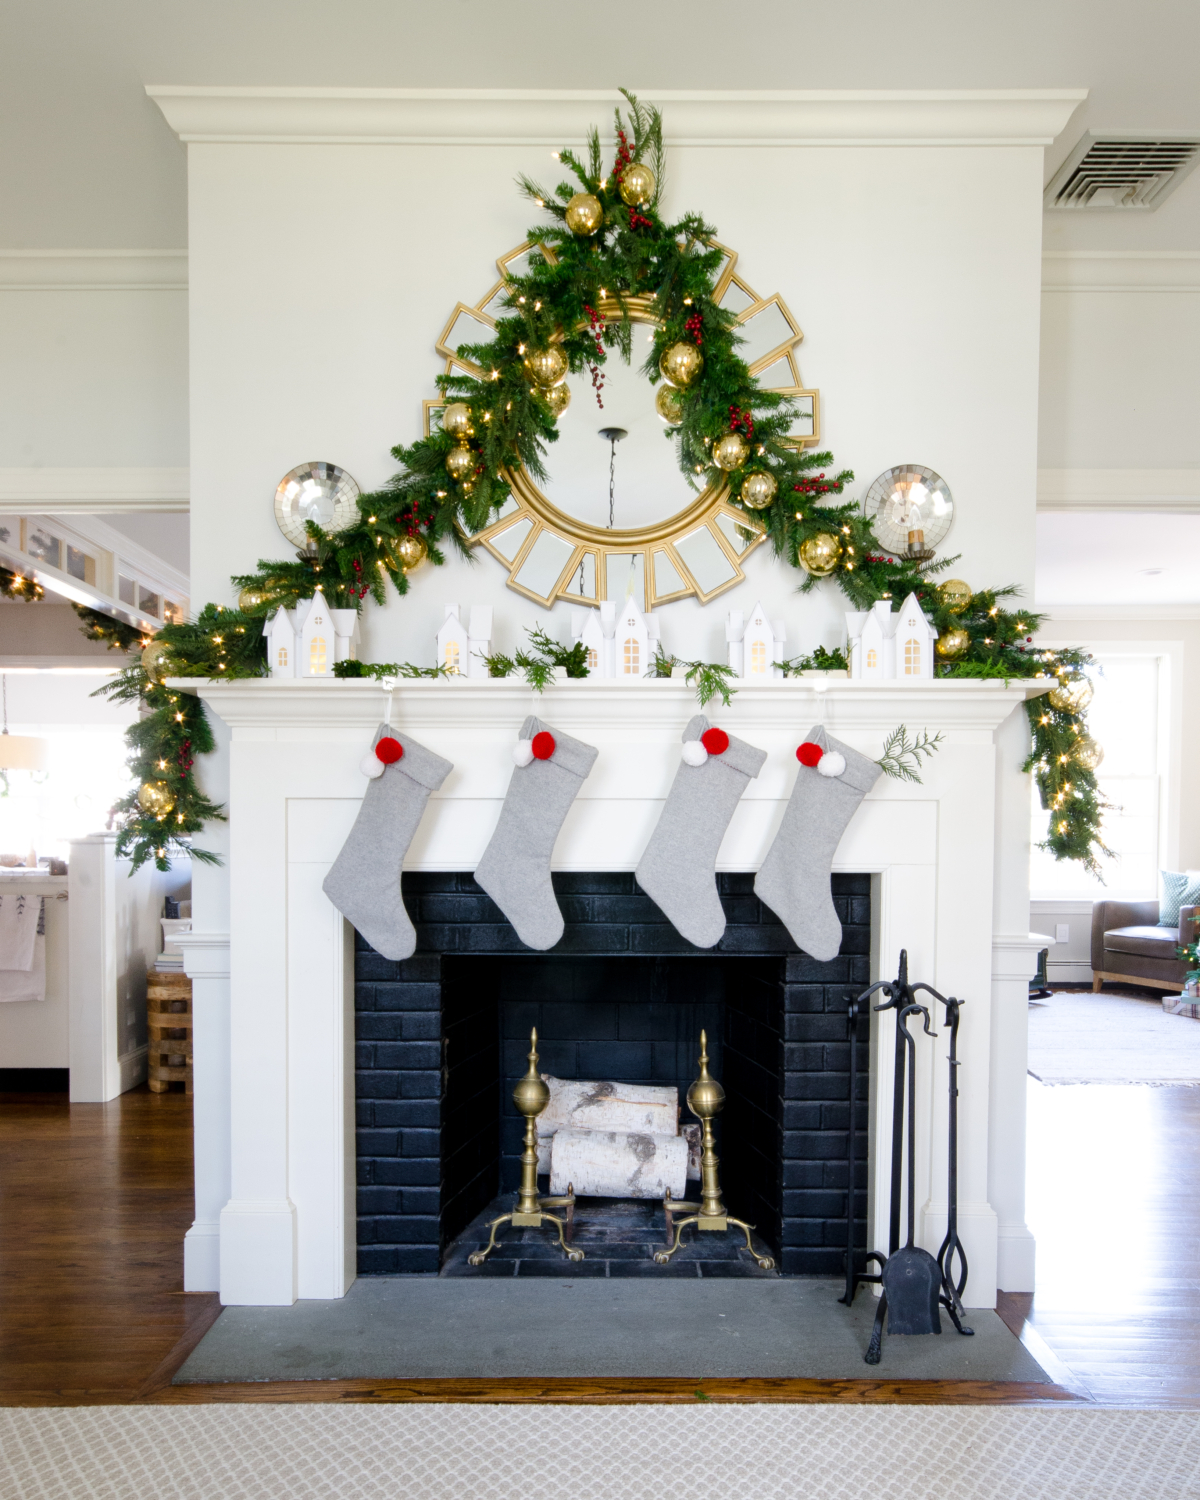 Classic Christmas mantle with lush garland, village houses, white, grey, gold, and red.